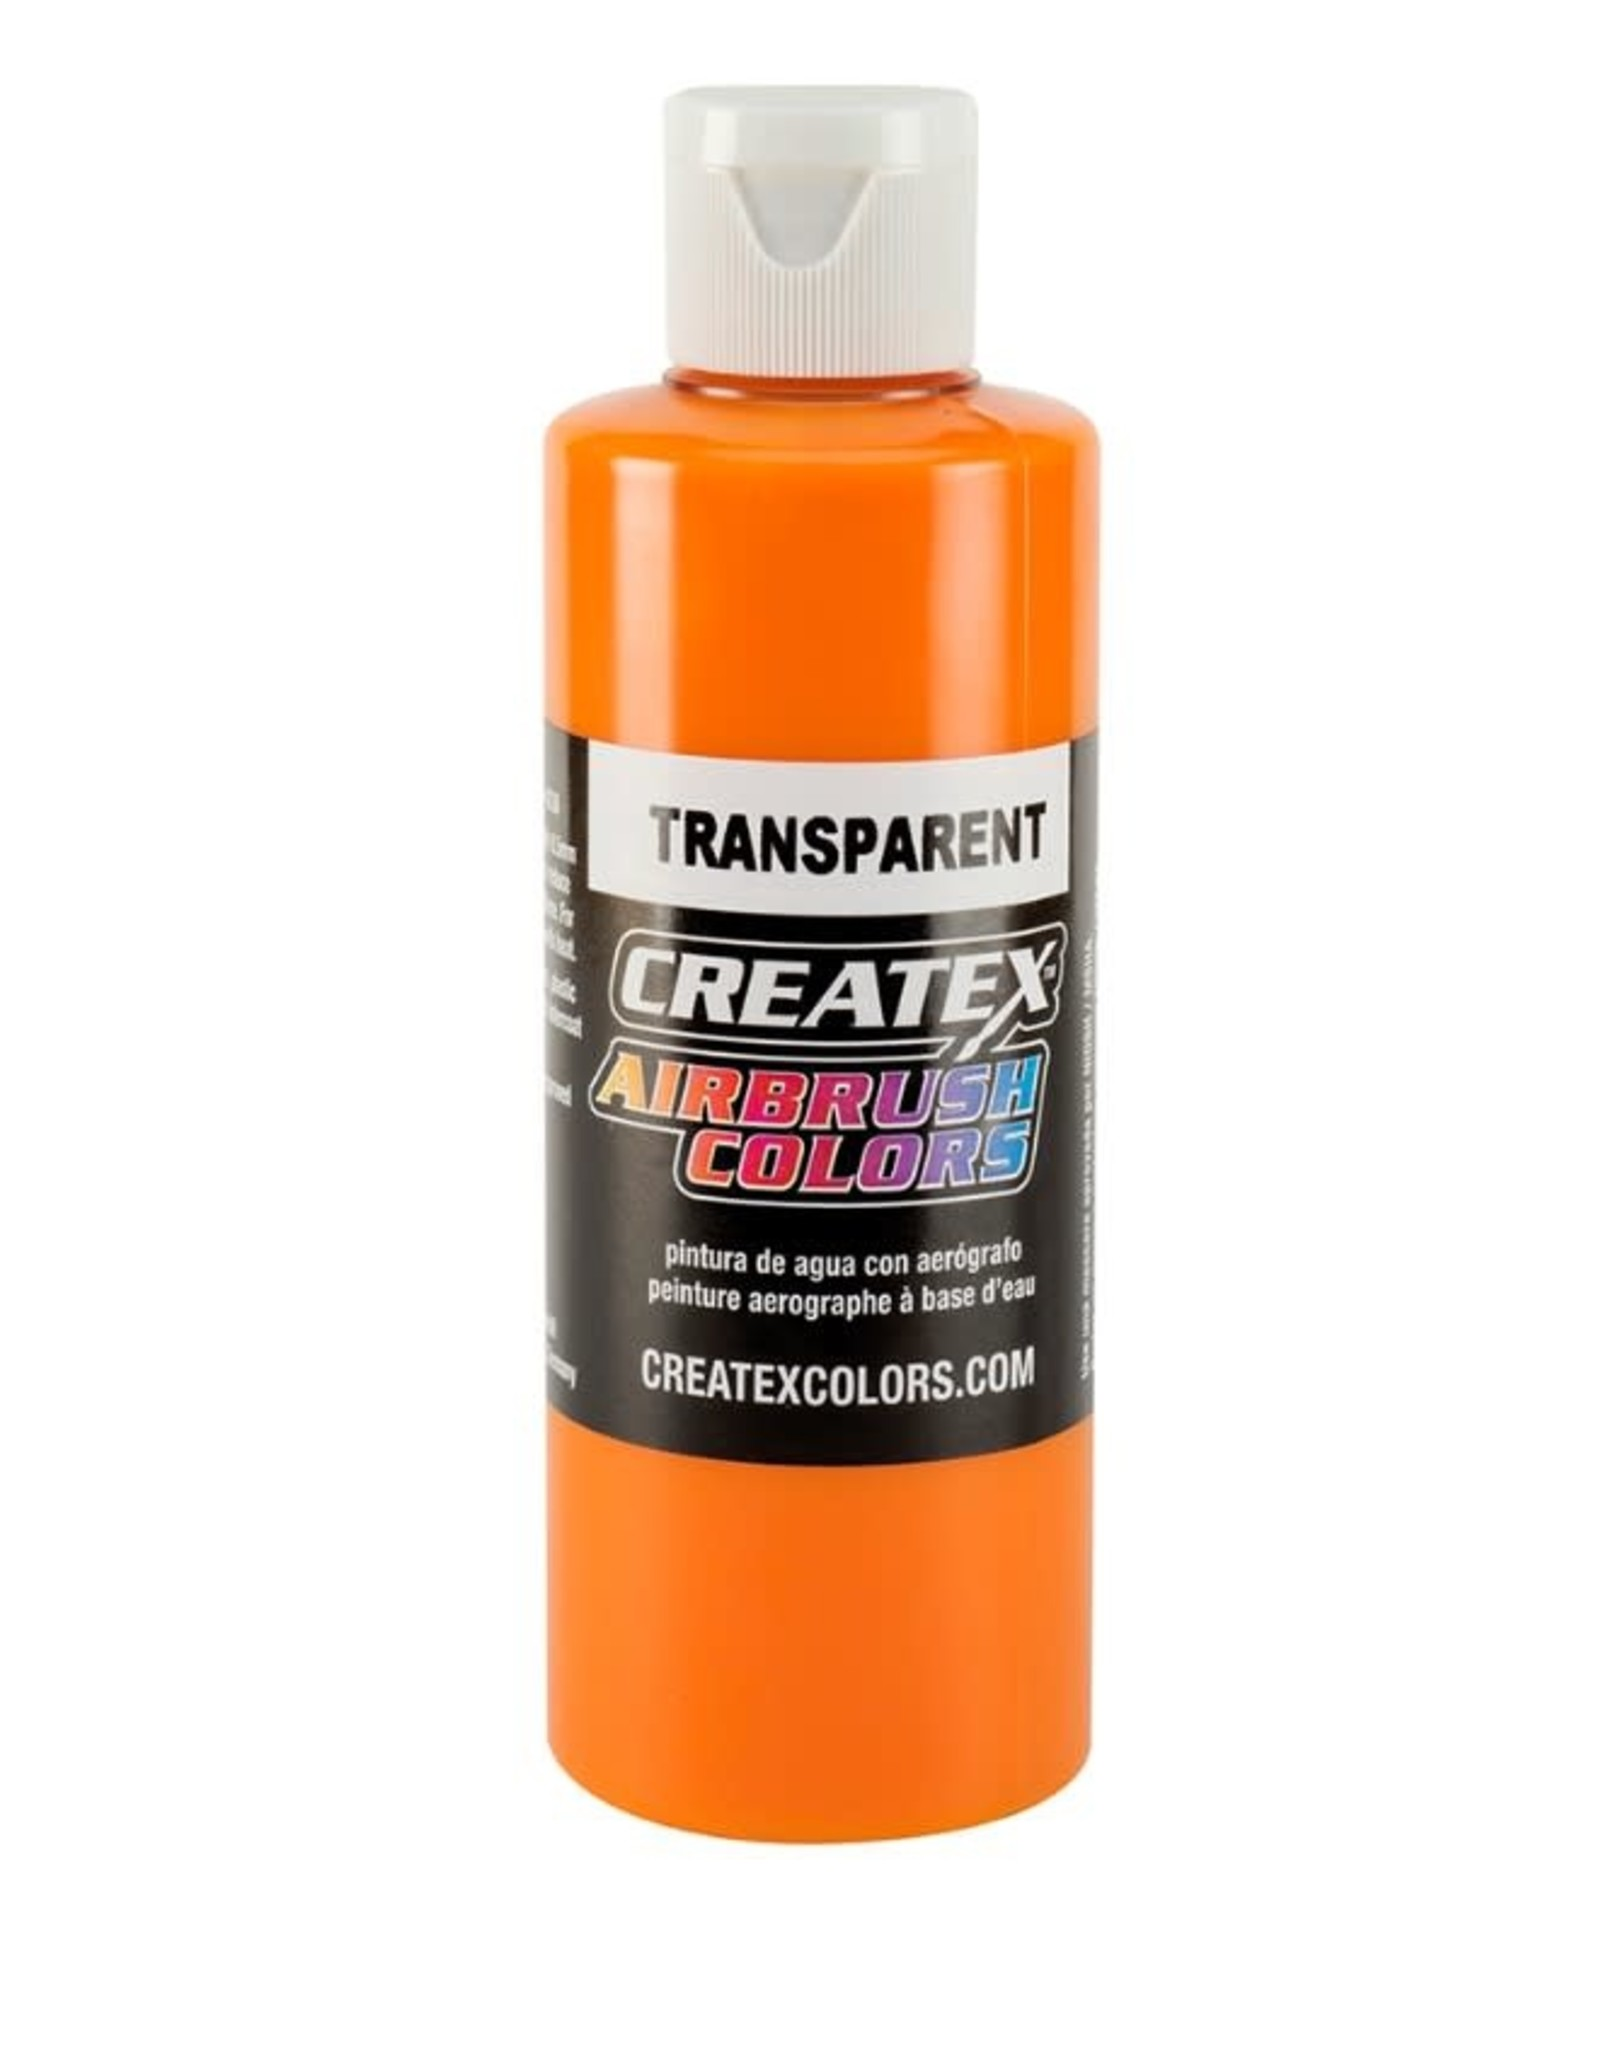 CREATEX COLORS Createx 4 oz AB Transparent Sunrise Yellow